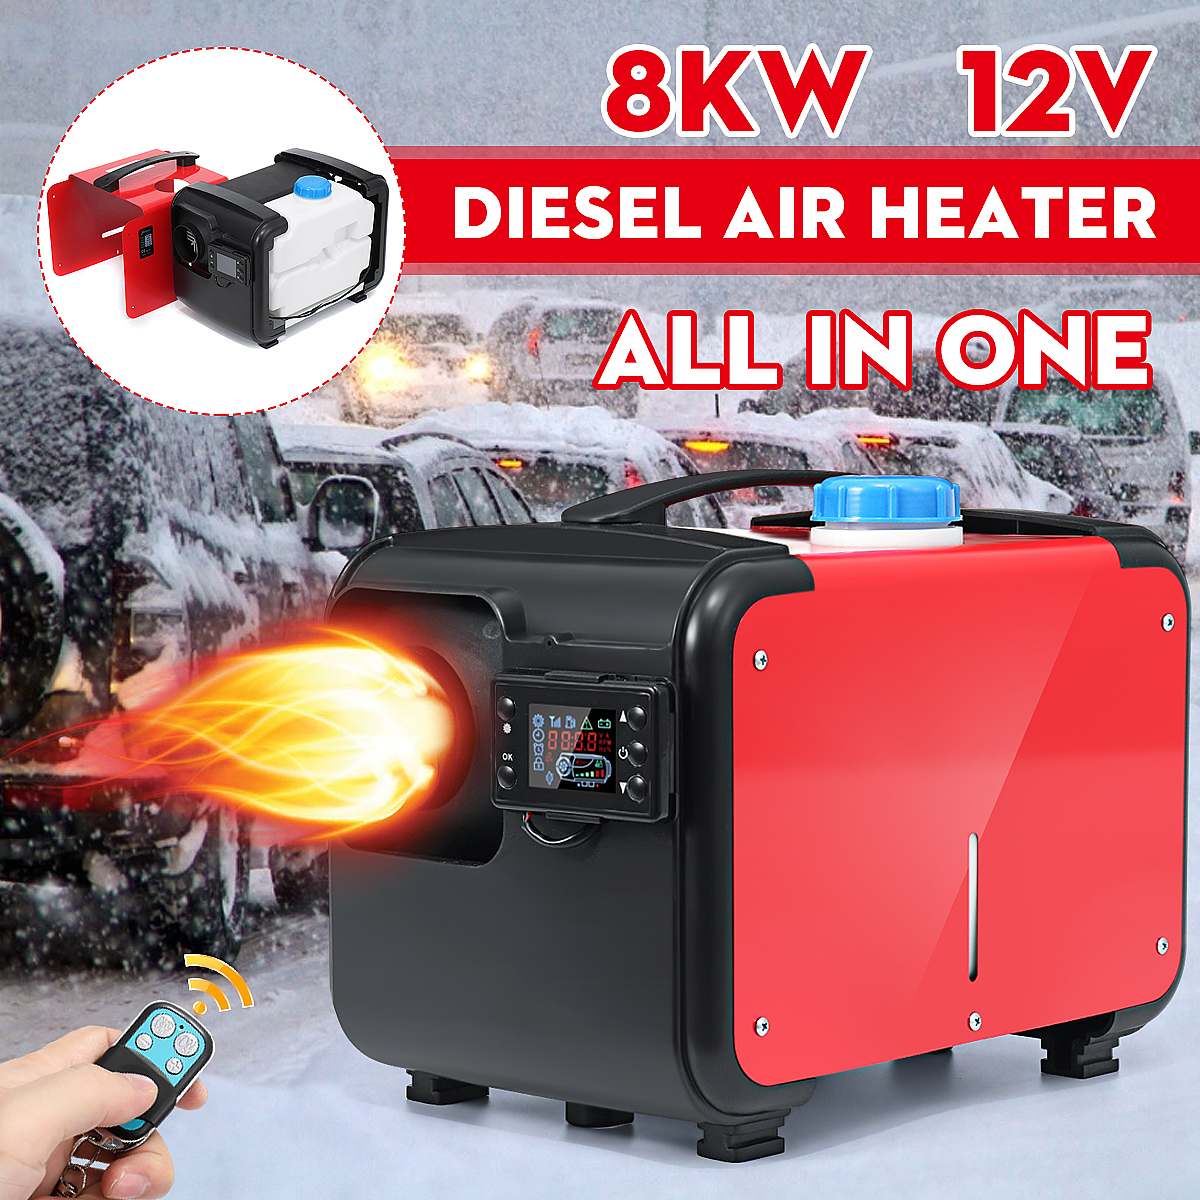 Car Heater 12V 24V 8KW All in One Heating Diesel Air Heater Single Hole New LCD Monitor Parking Warmer Quick Heat For Truck Bus